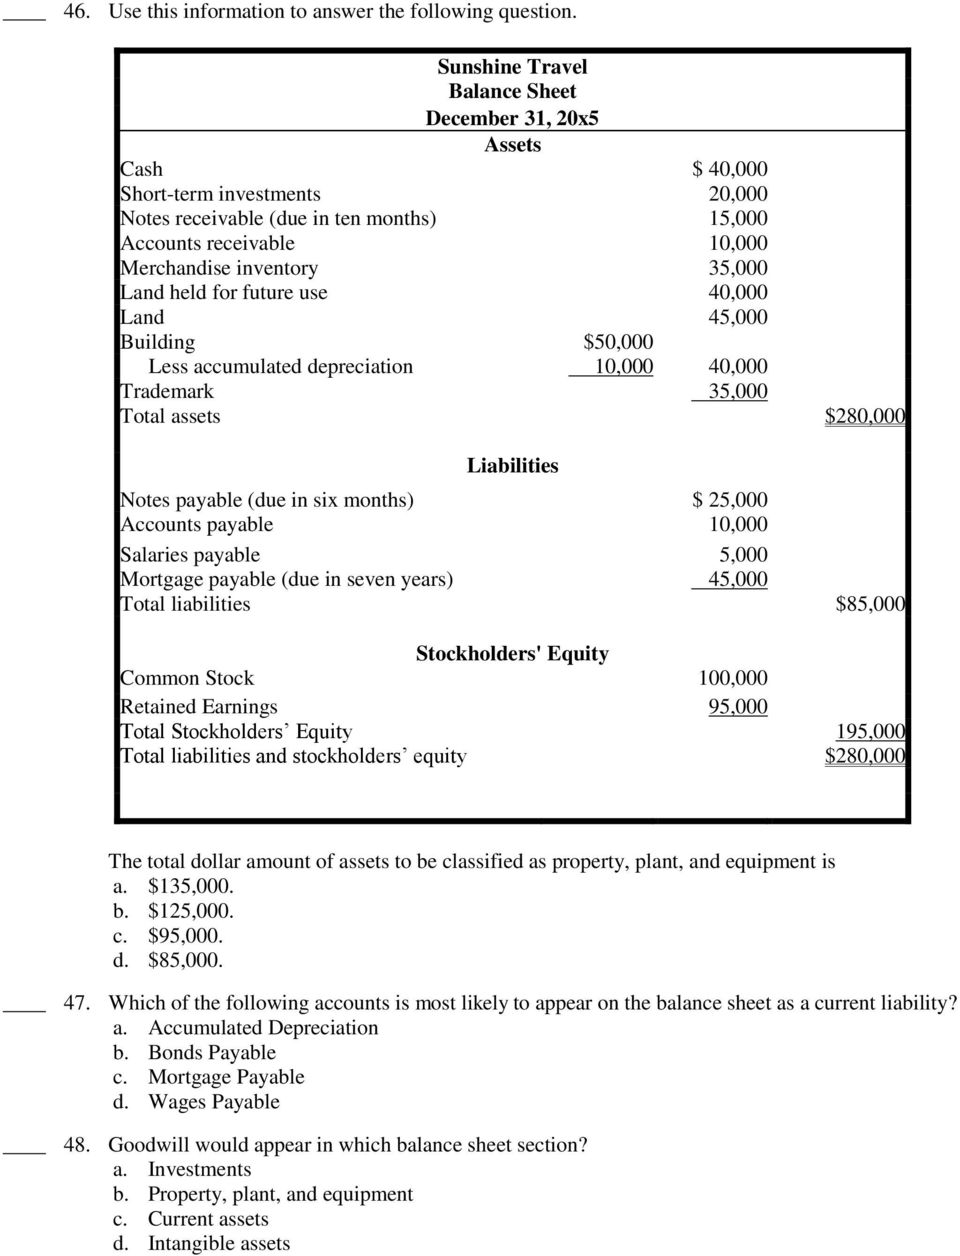 Land held for future use 40,000 Land 45,000 Building $50,000 Less accumulated depreciation 10,000 40,000 Trademark 35,000 Total assets $280,000 Liabilities Notes payable (due in six months) $ 25,000